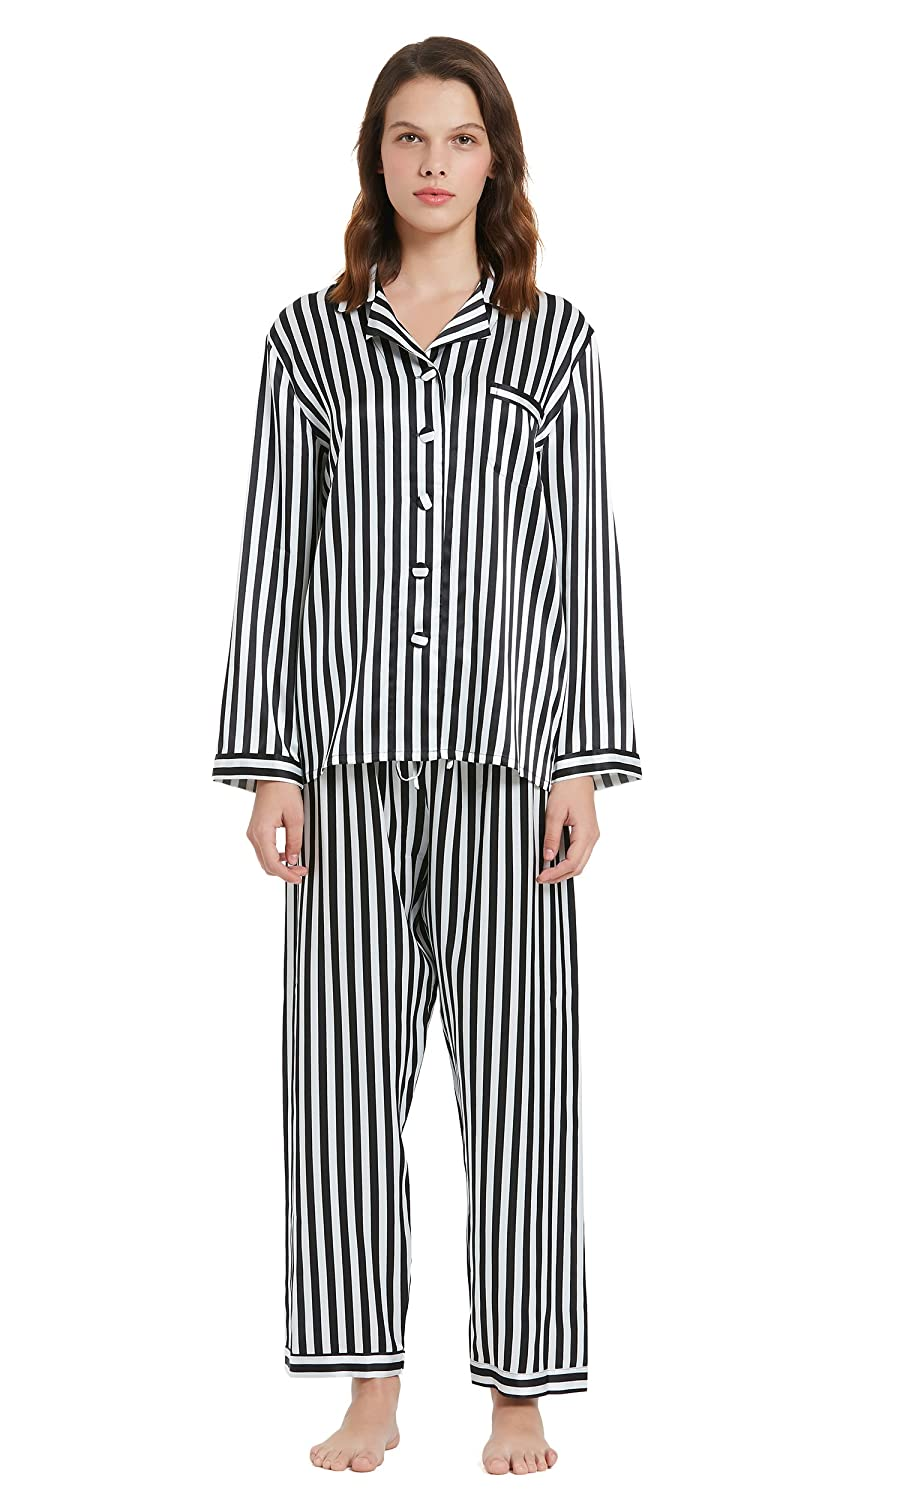 6ff49a80e2e2d LilySilk Silk Pajamas Set for Women 22 Momme Soft with Black and White  Stripe Long Sleeve Loungewear at Amazon Women s Clothing store